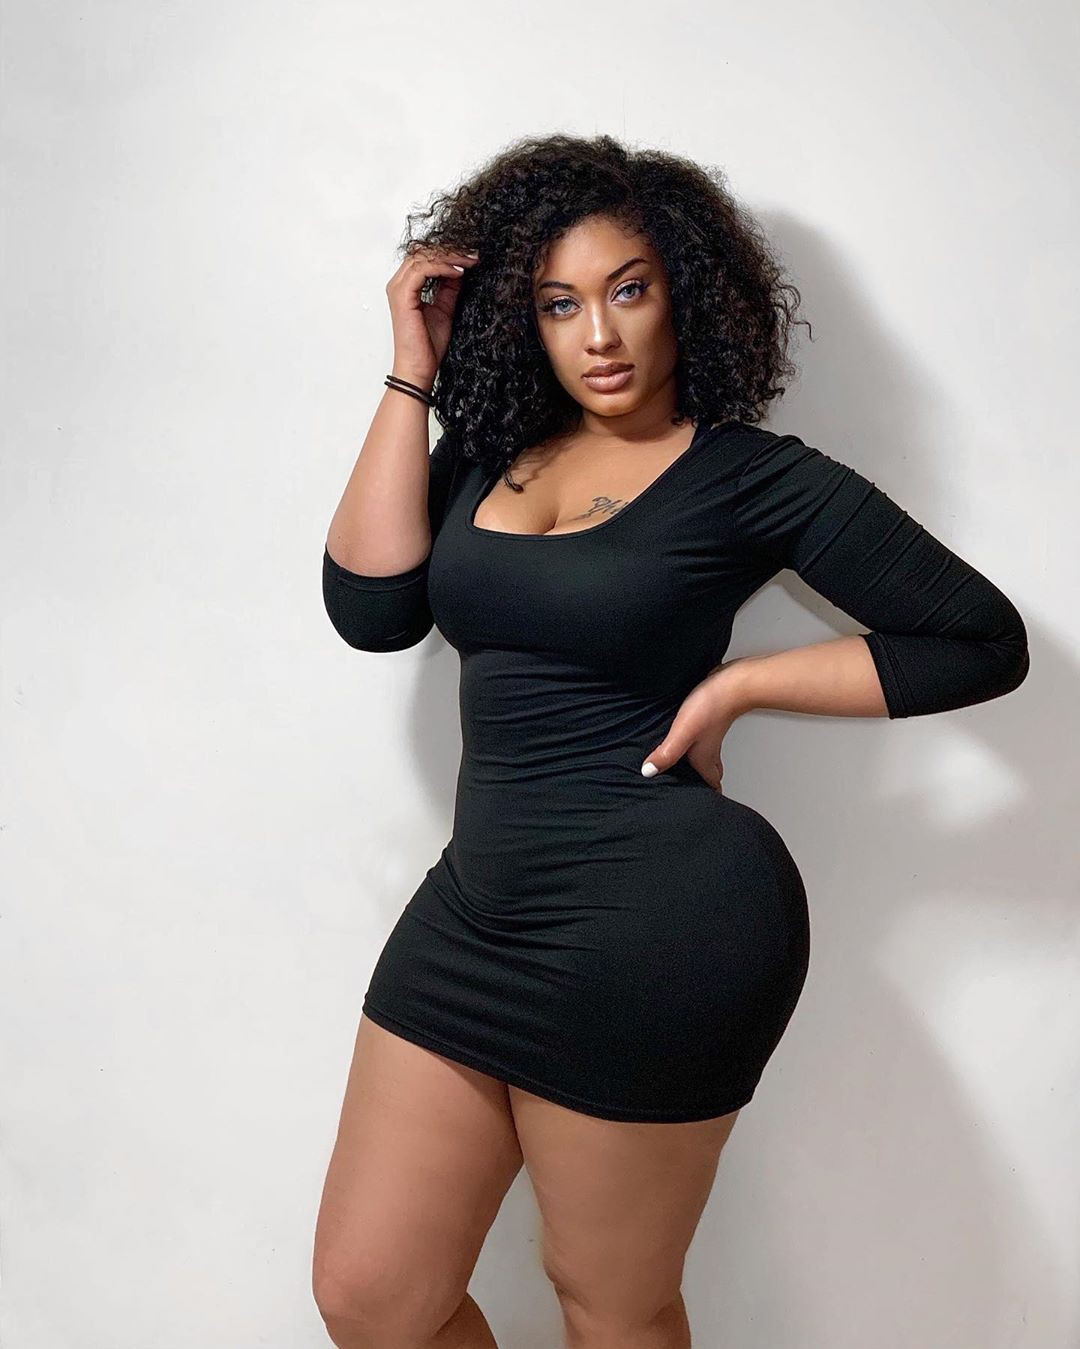 black matching outfit with little black dress, best photoshoot ideas, hot thighs